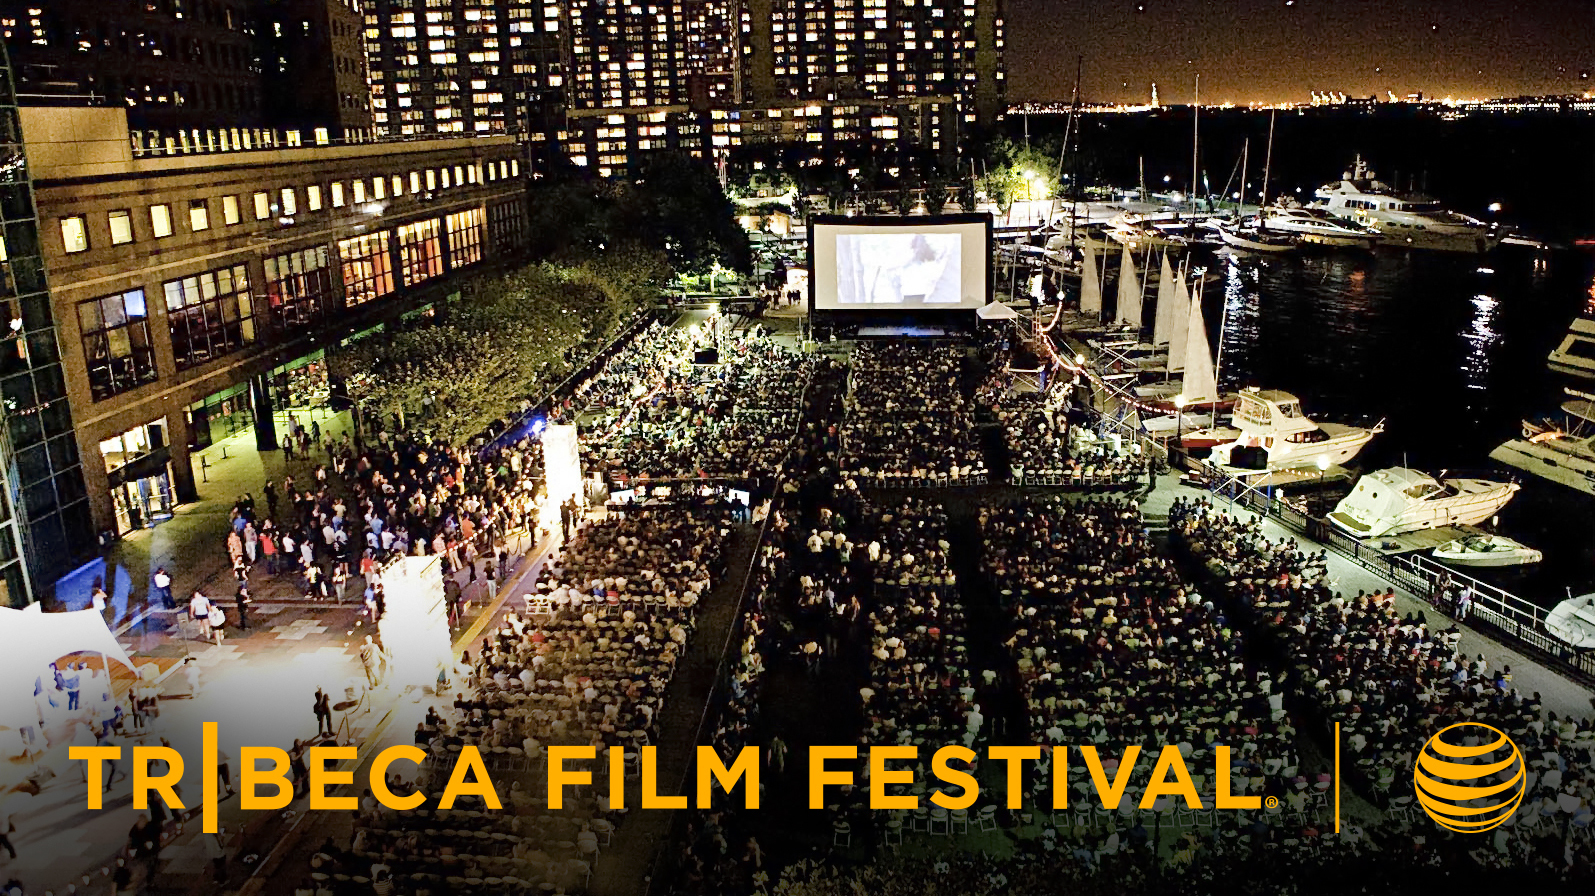 Ten events we're excited about at the Tribeca Film Festival